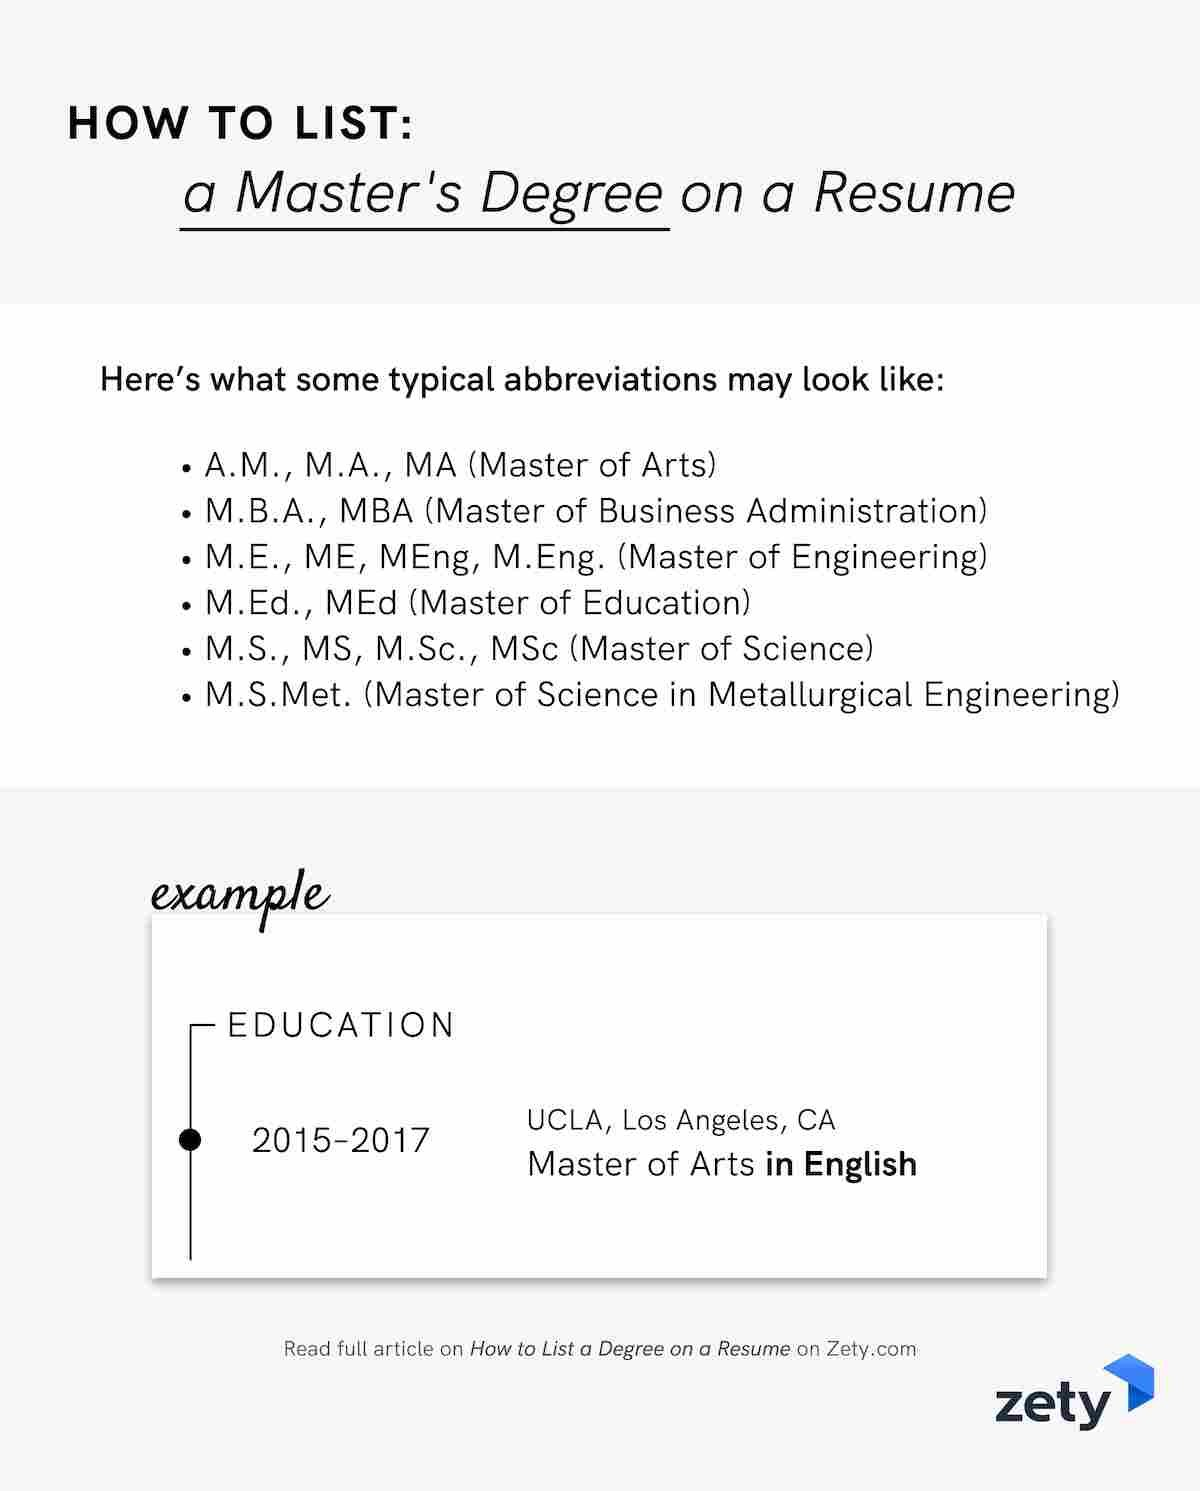 How to put a dual degree on resume top masters essay editor website for university